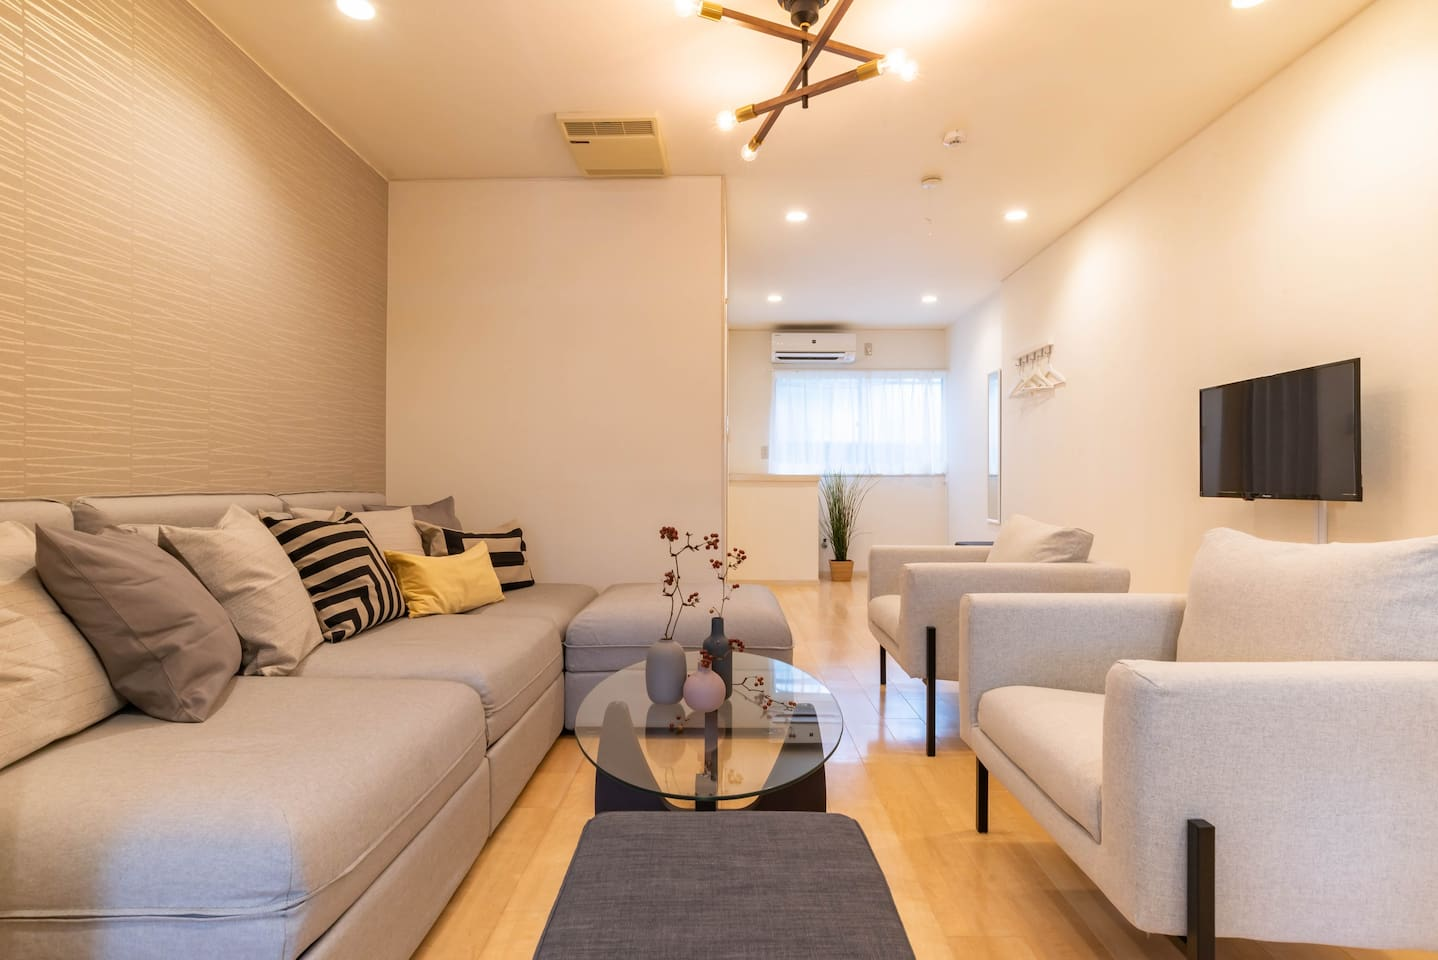 1F: Relaxing living room with a large sofa.